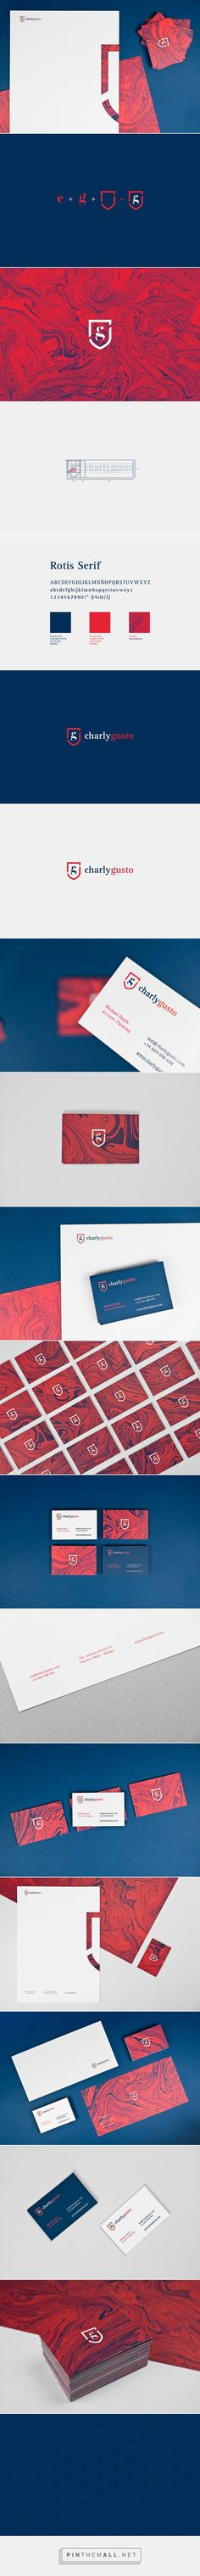 Charly Gusto on Behance